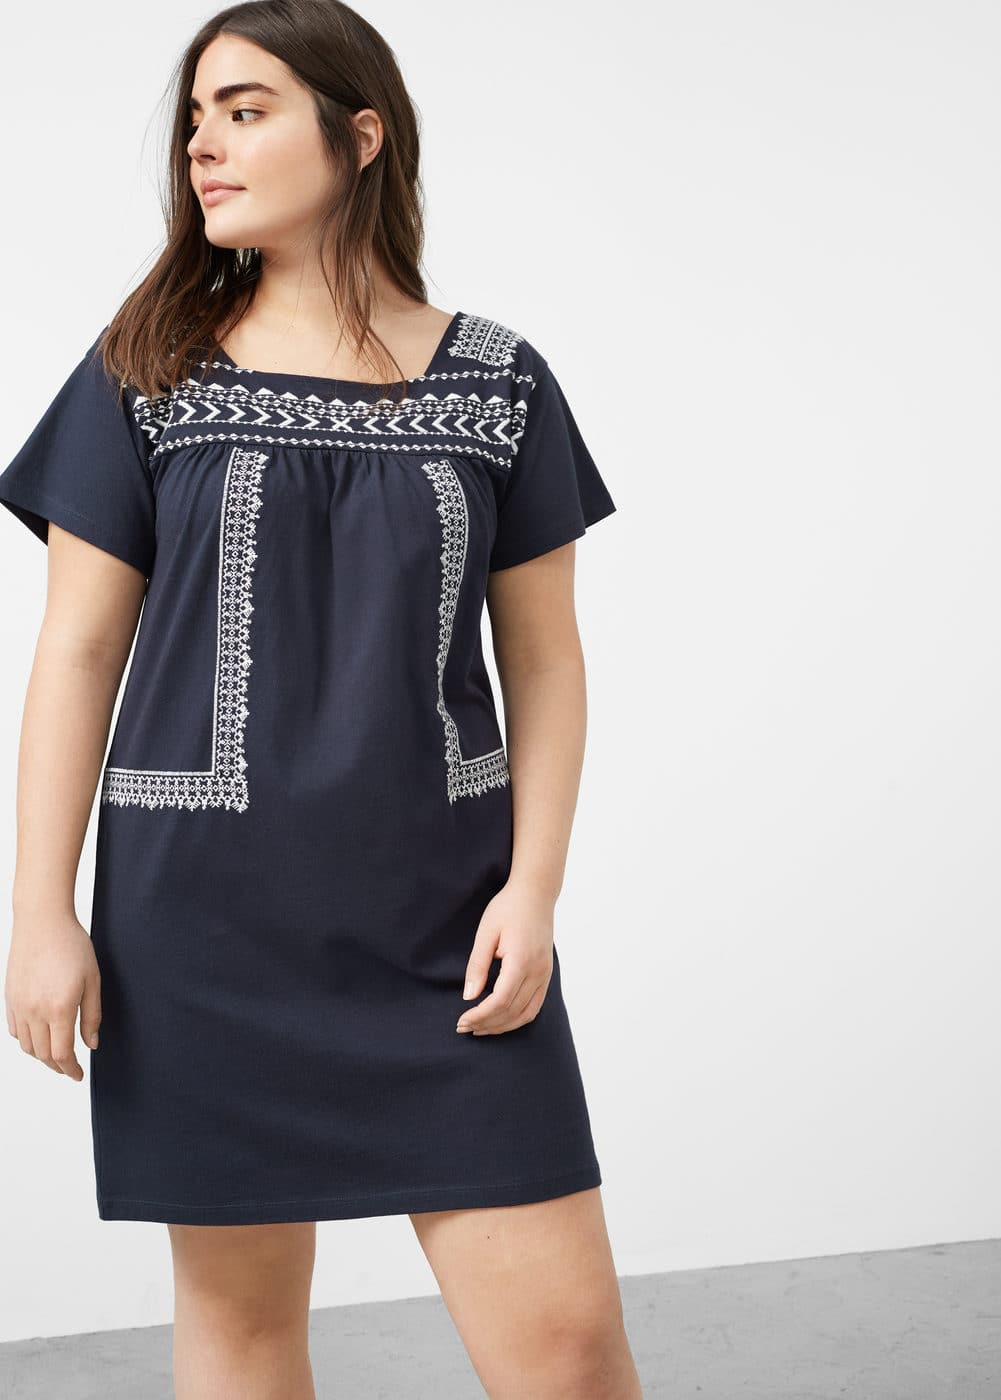 Embroidered detail dress | VIOLETA BY MNG